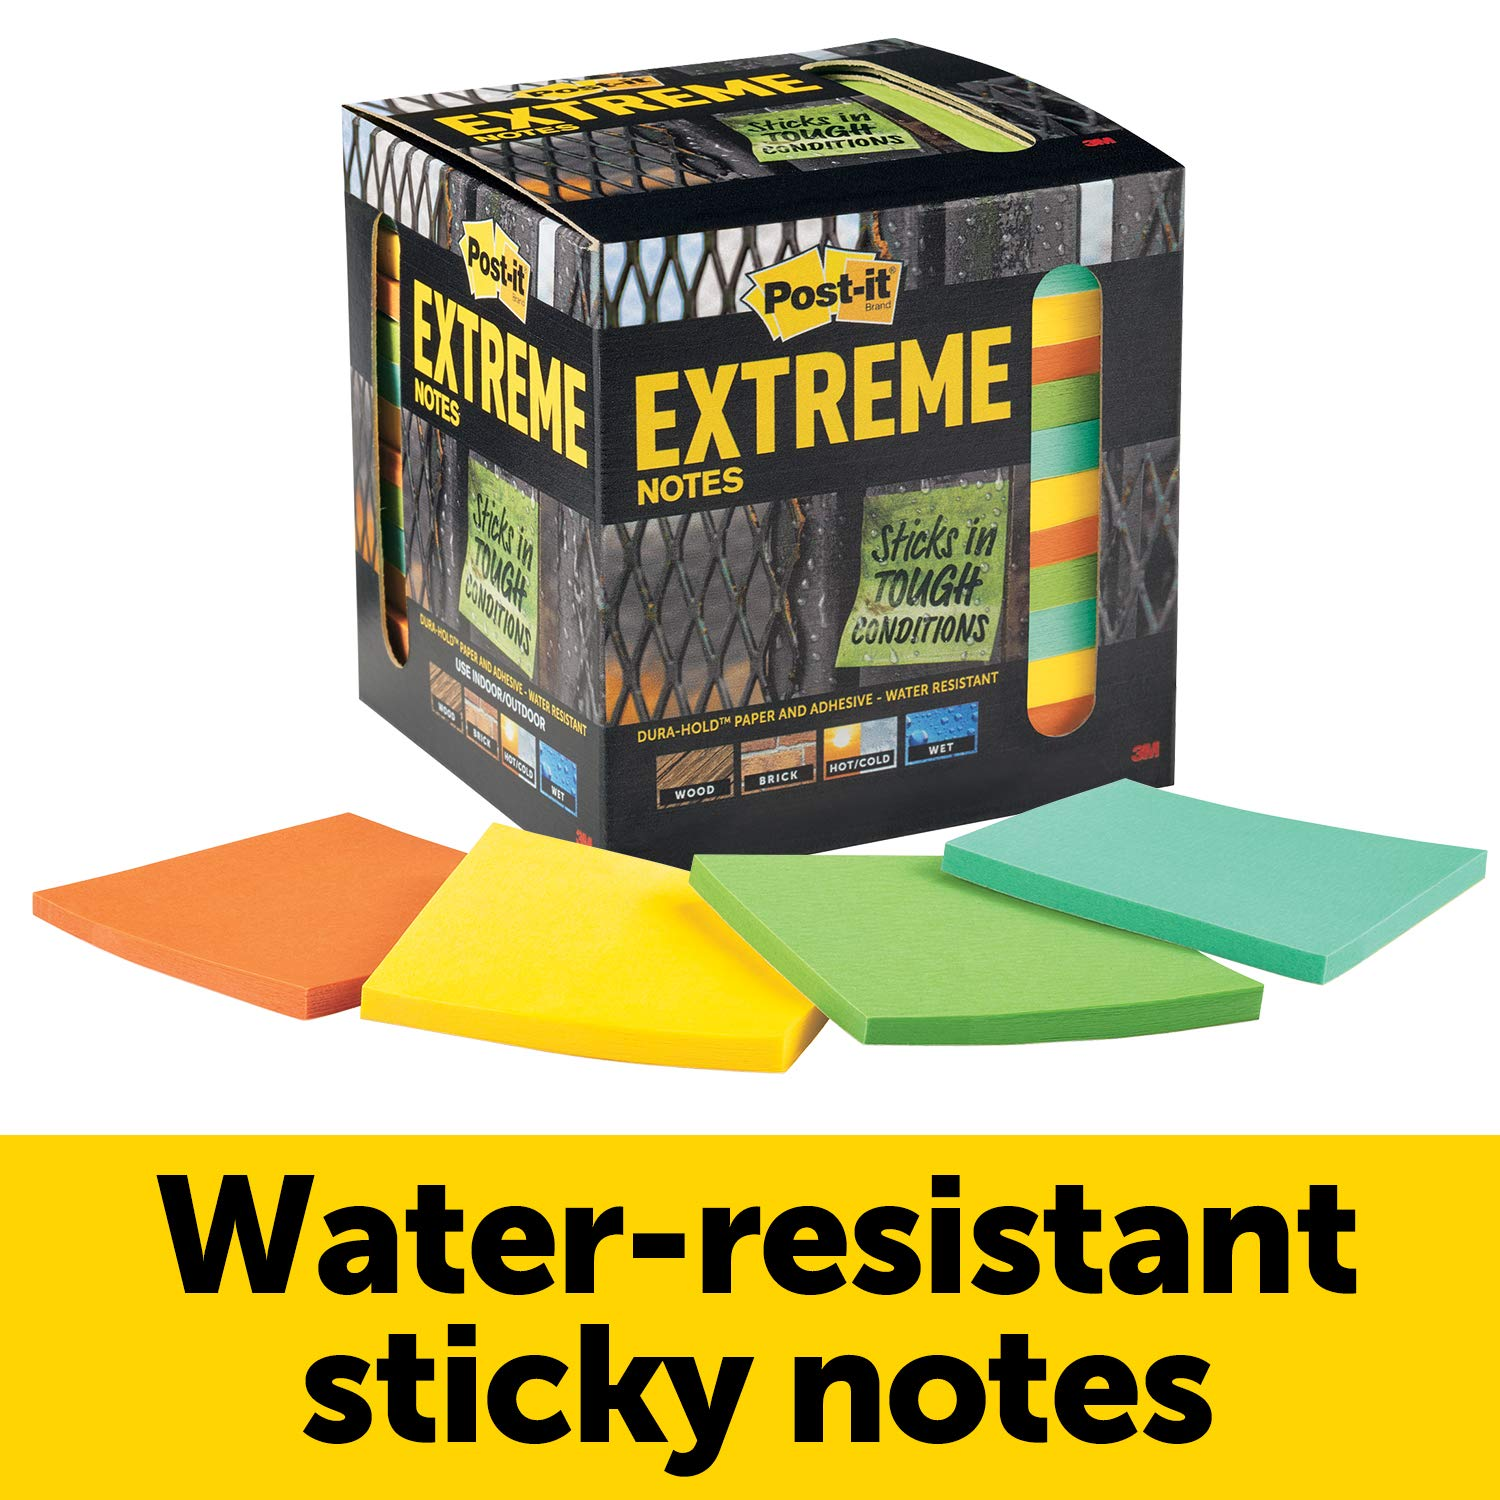 Post-it Extreme Notes 3x3 12 Pads In Box 45 Sheets